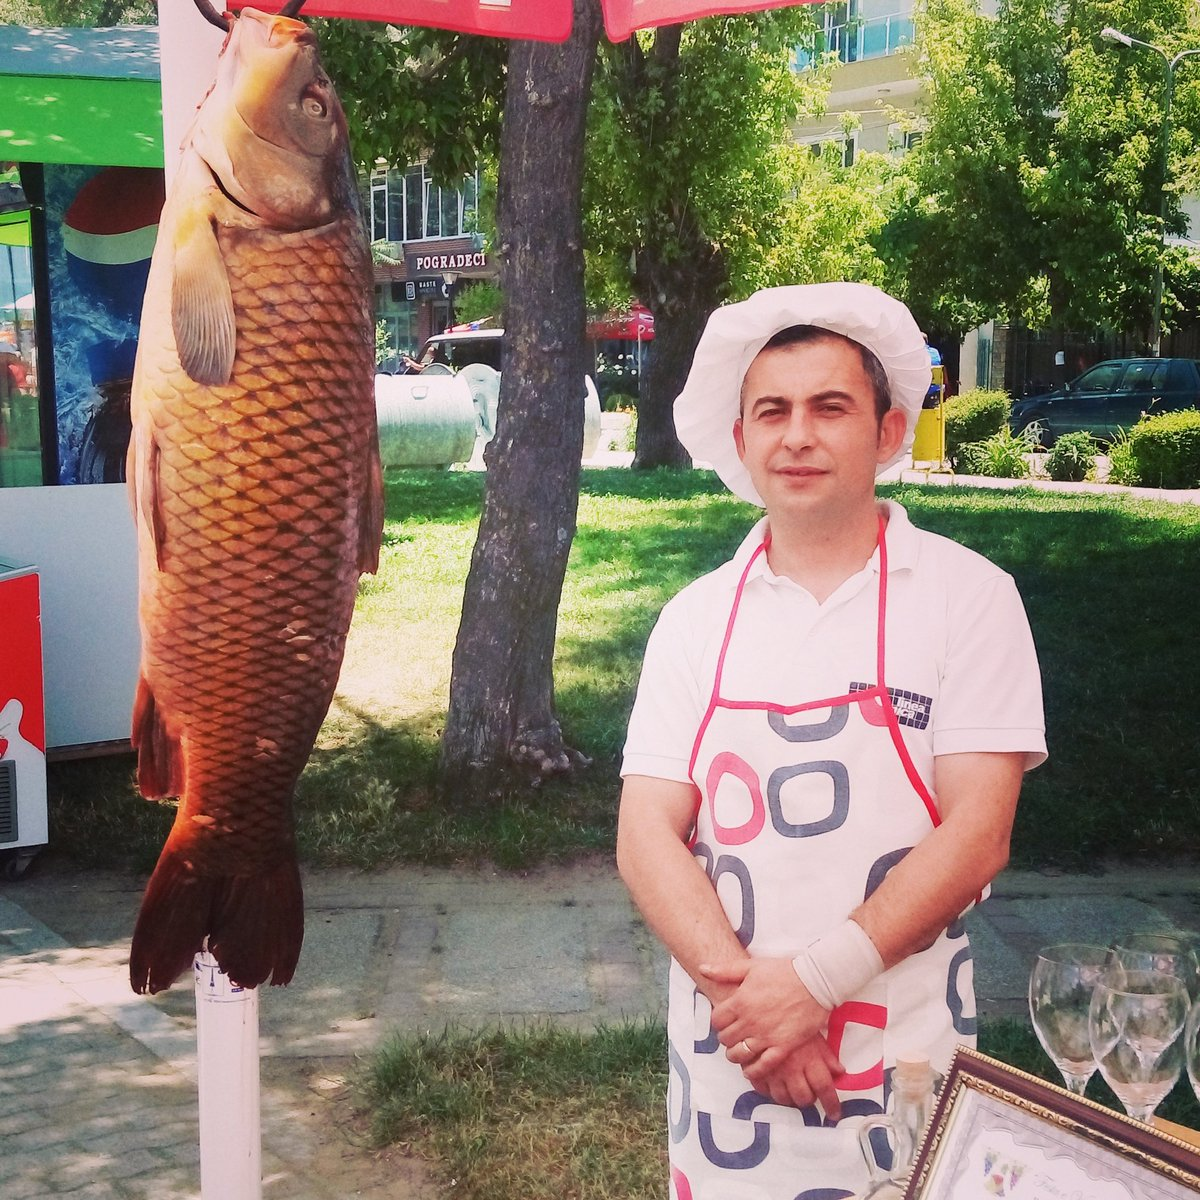 Day of Ohrid lake in #Pogradec #Albania #Goyourownway #artisans #gastronomy #freshair<br>http://pic.twitter.com/YqqQI8OoUd